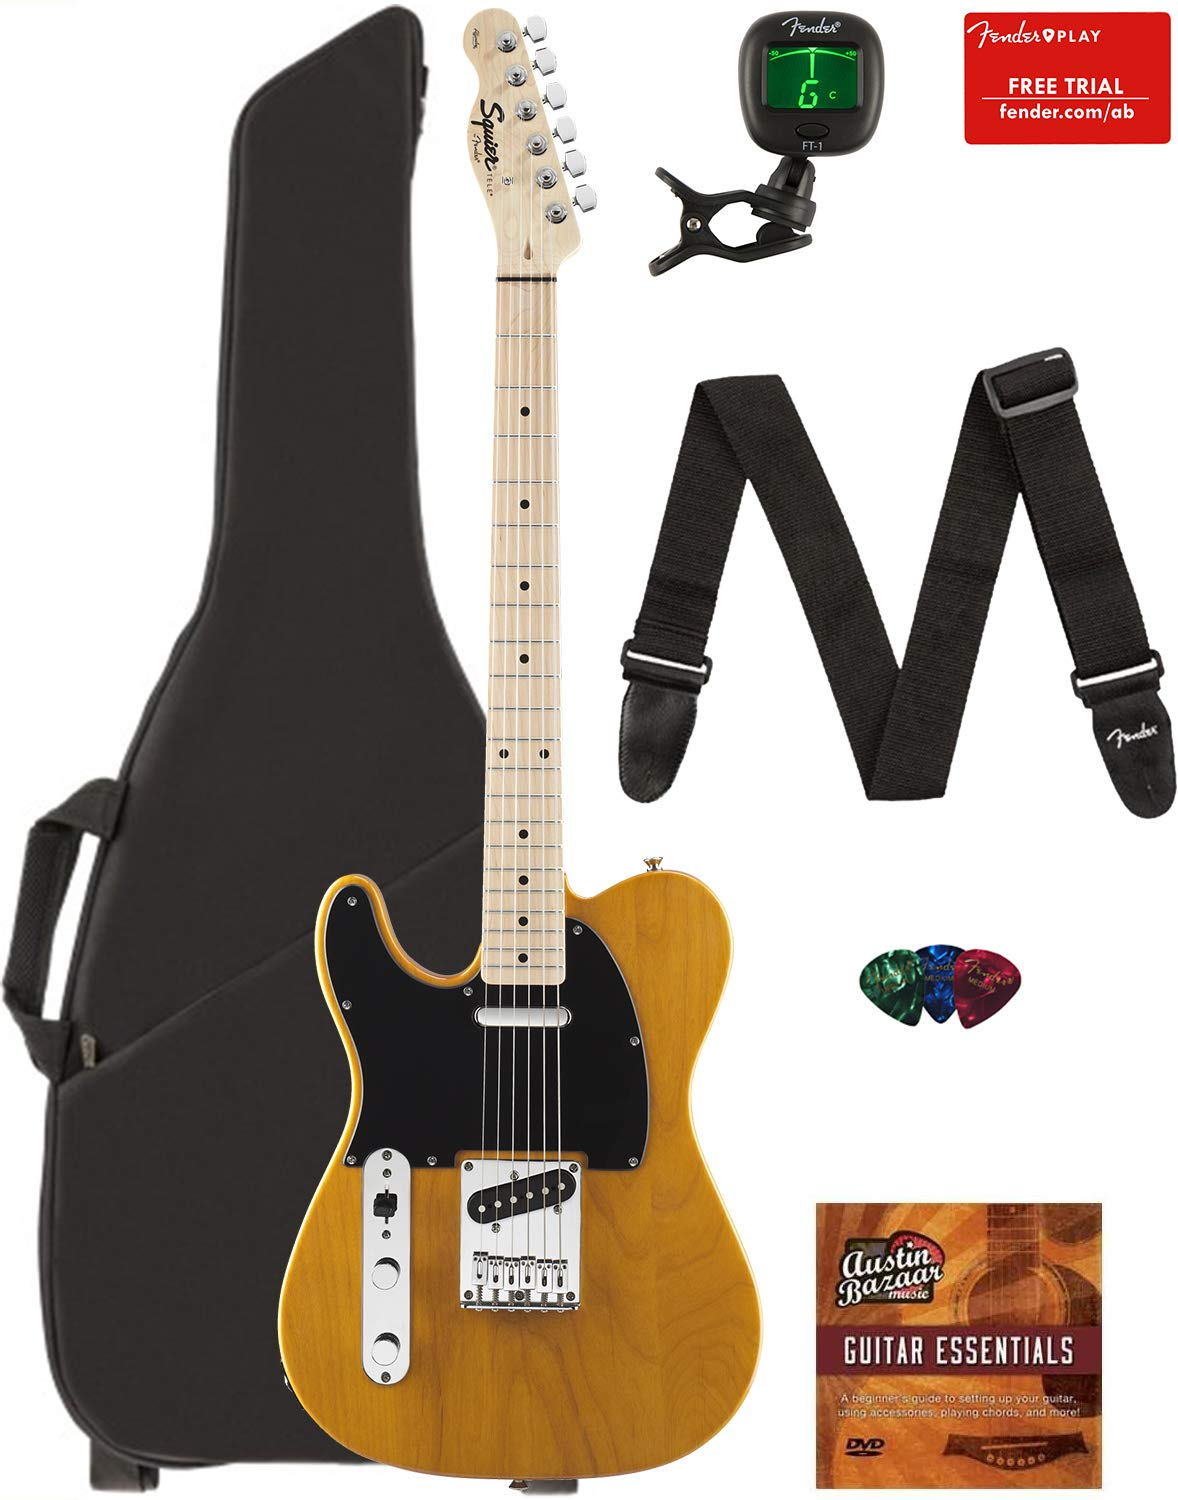 Cheap Fender Squier Affinity Series Telecaster Left-Handed Guitar - Maple Fingerboard Butterscotch Blonde Bundle with Gig Bag Tuner Strap Picks and Austin Bazaar Instructional DVD Black Friday & Cyber Monday 2019